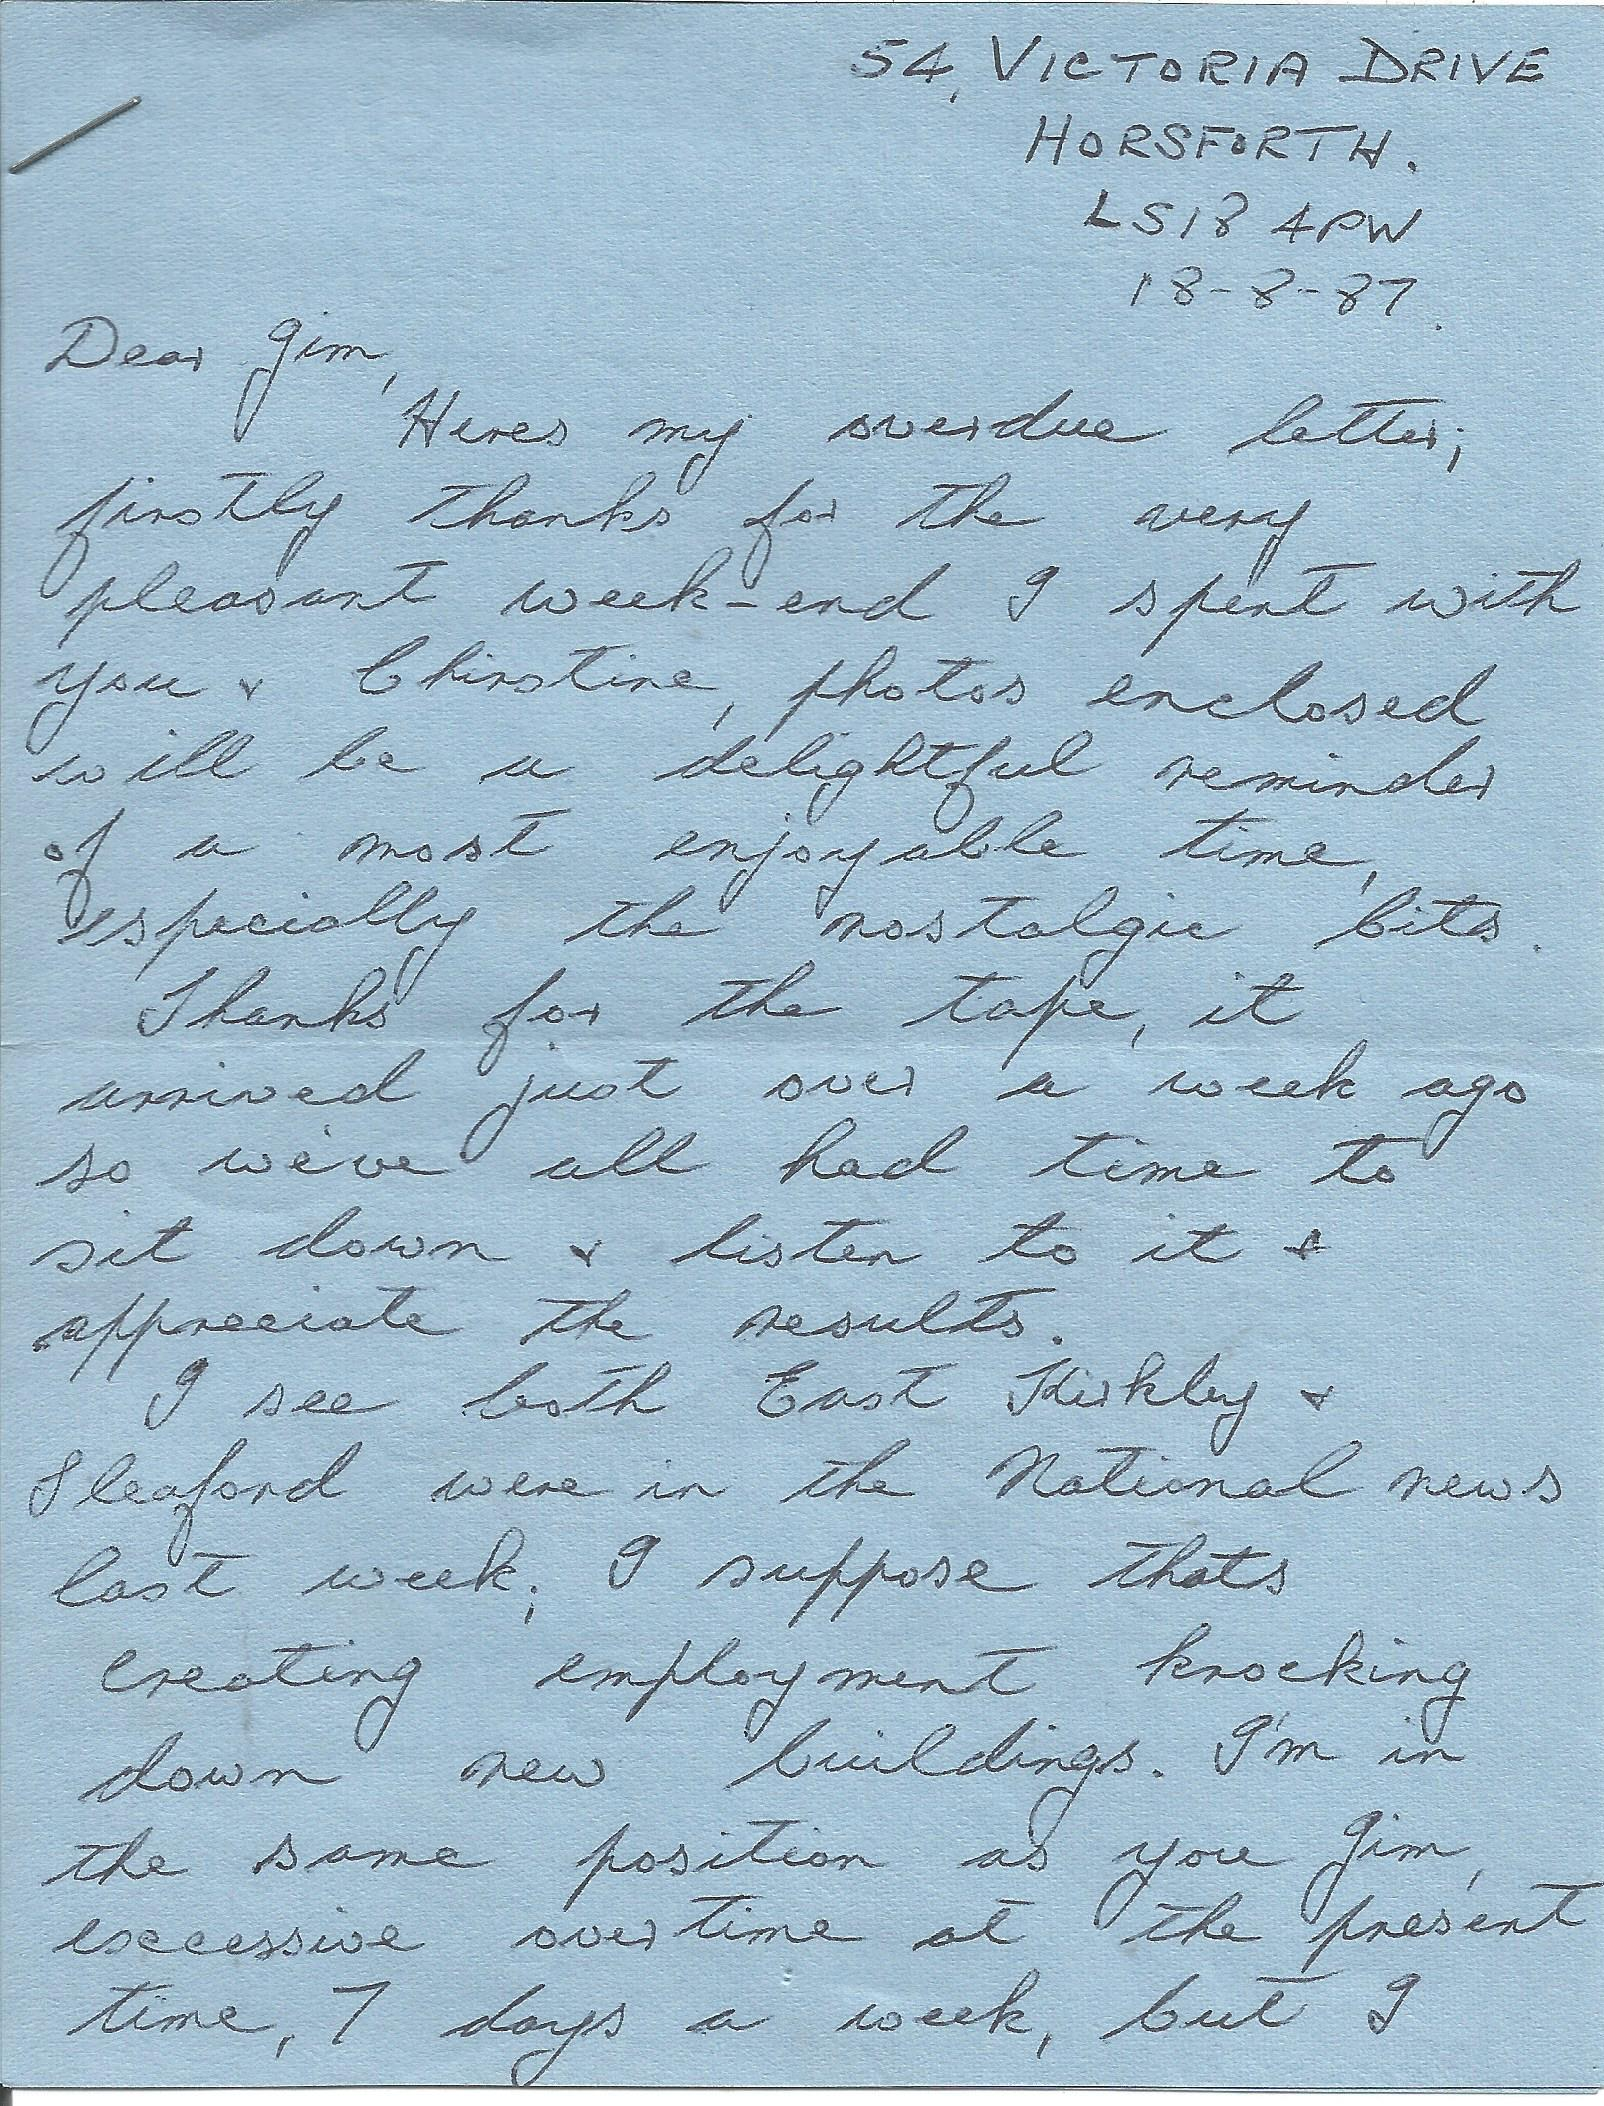 Lot 30 - Harry Johnson 617 Sqn WW2 Tirpitz raid hand written letter. From the Jim Shortland 617 Sqn Historian